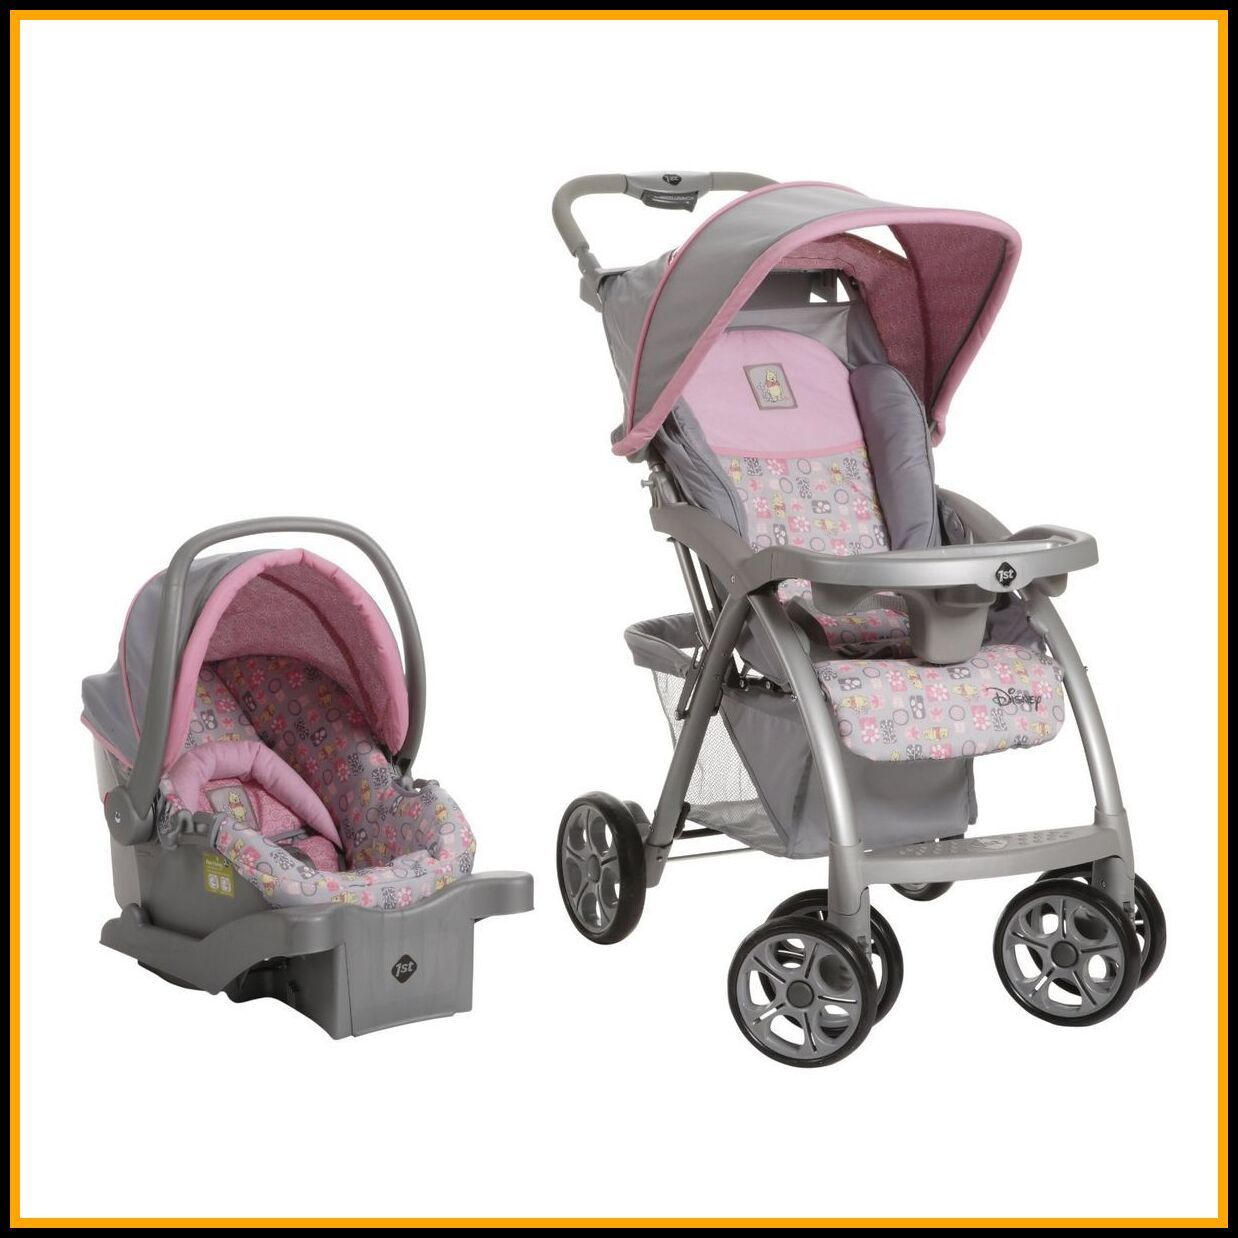 Pin on stroller twin for boy